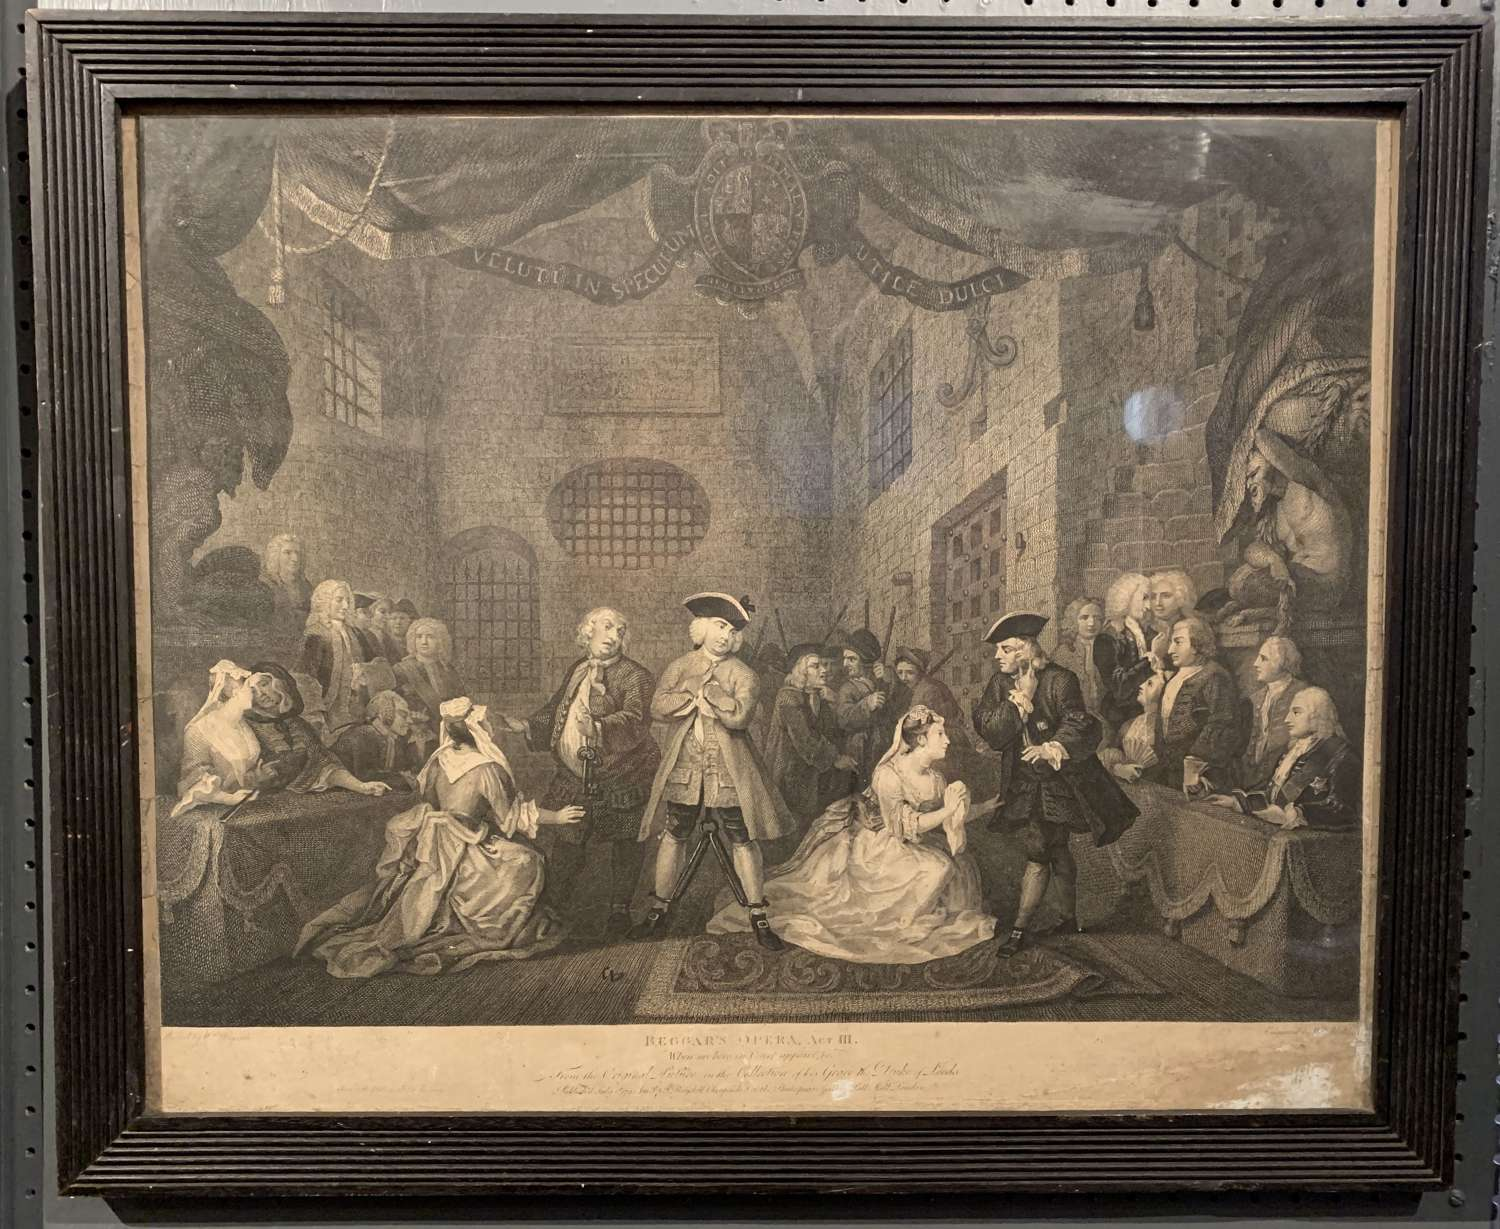 After William Hogarth, The Beggar's Opera, Act III, Engraving